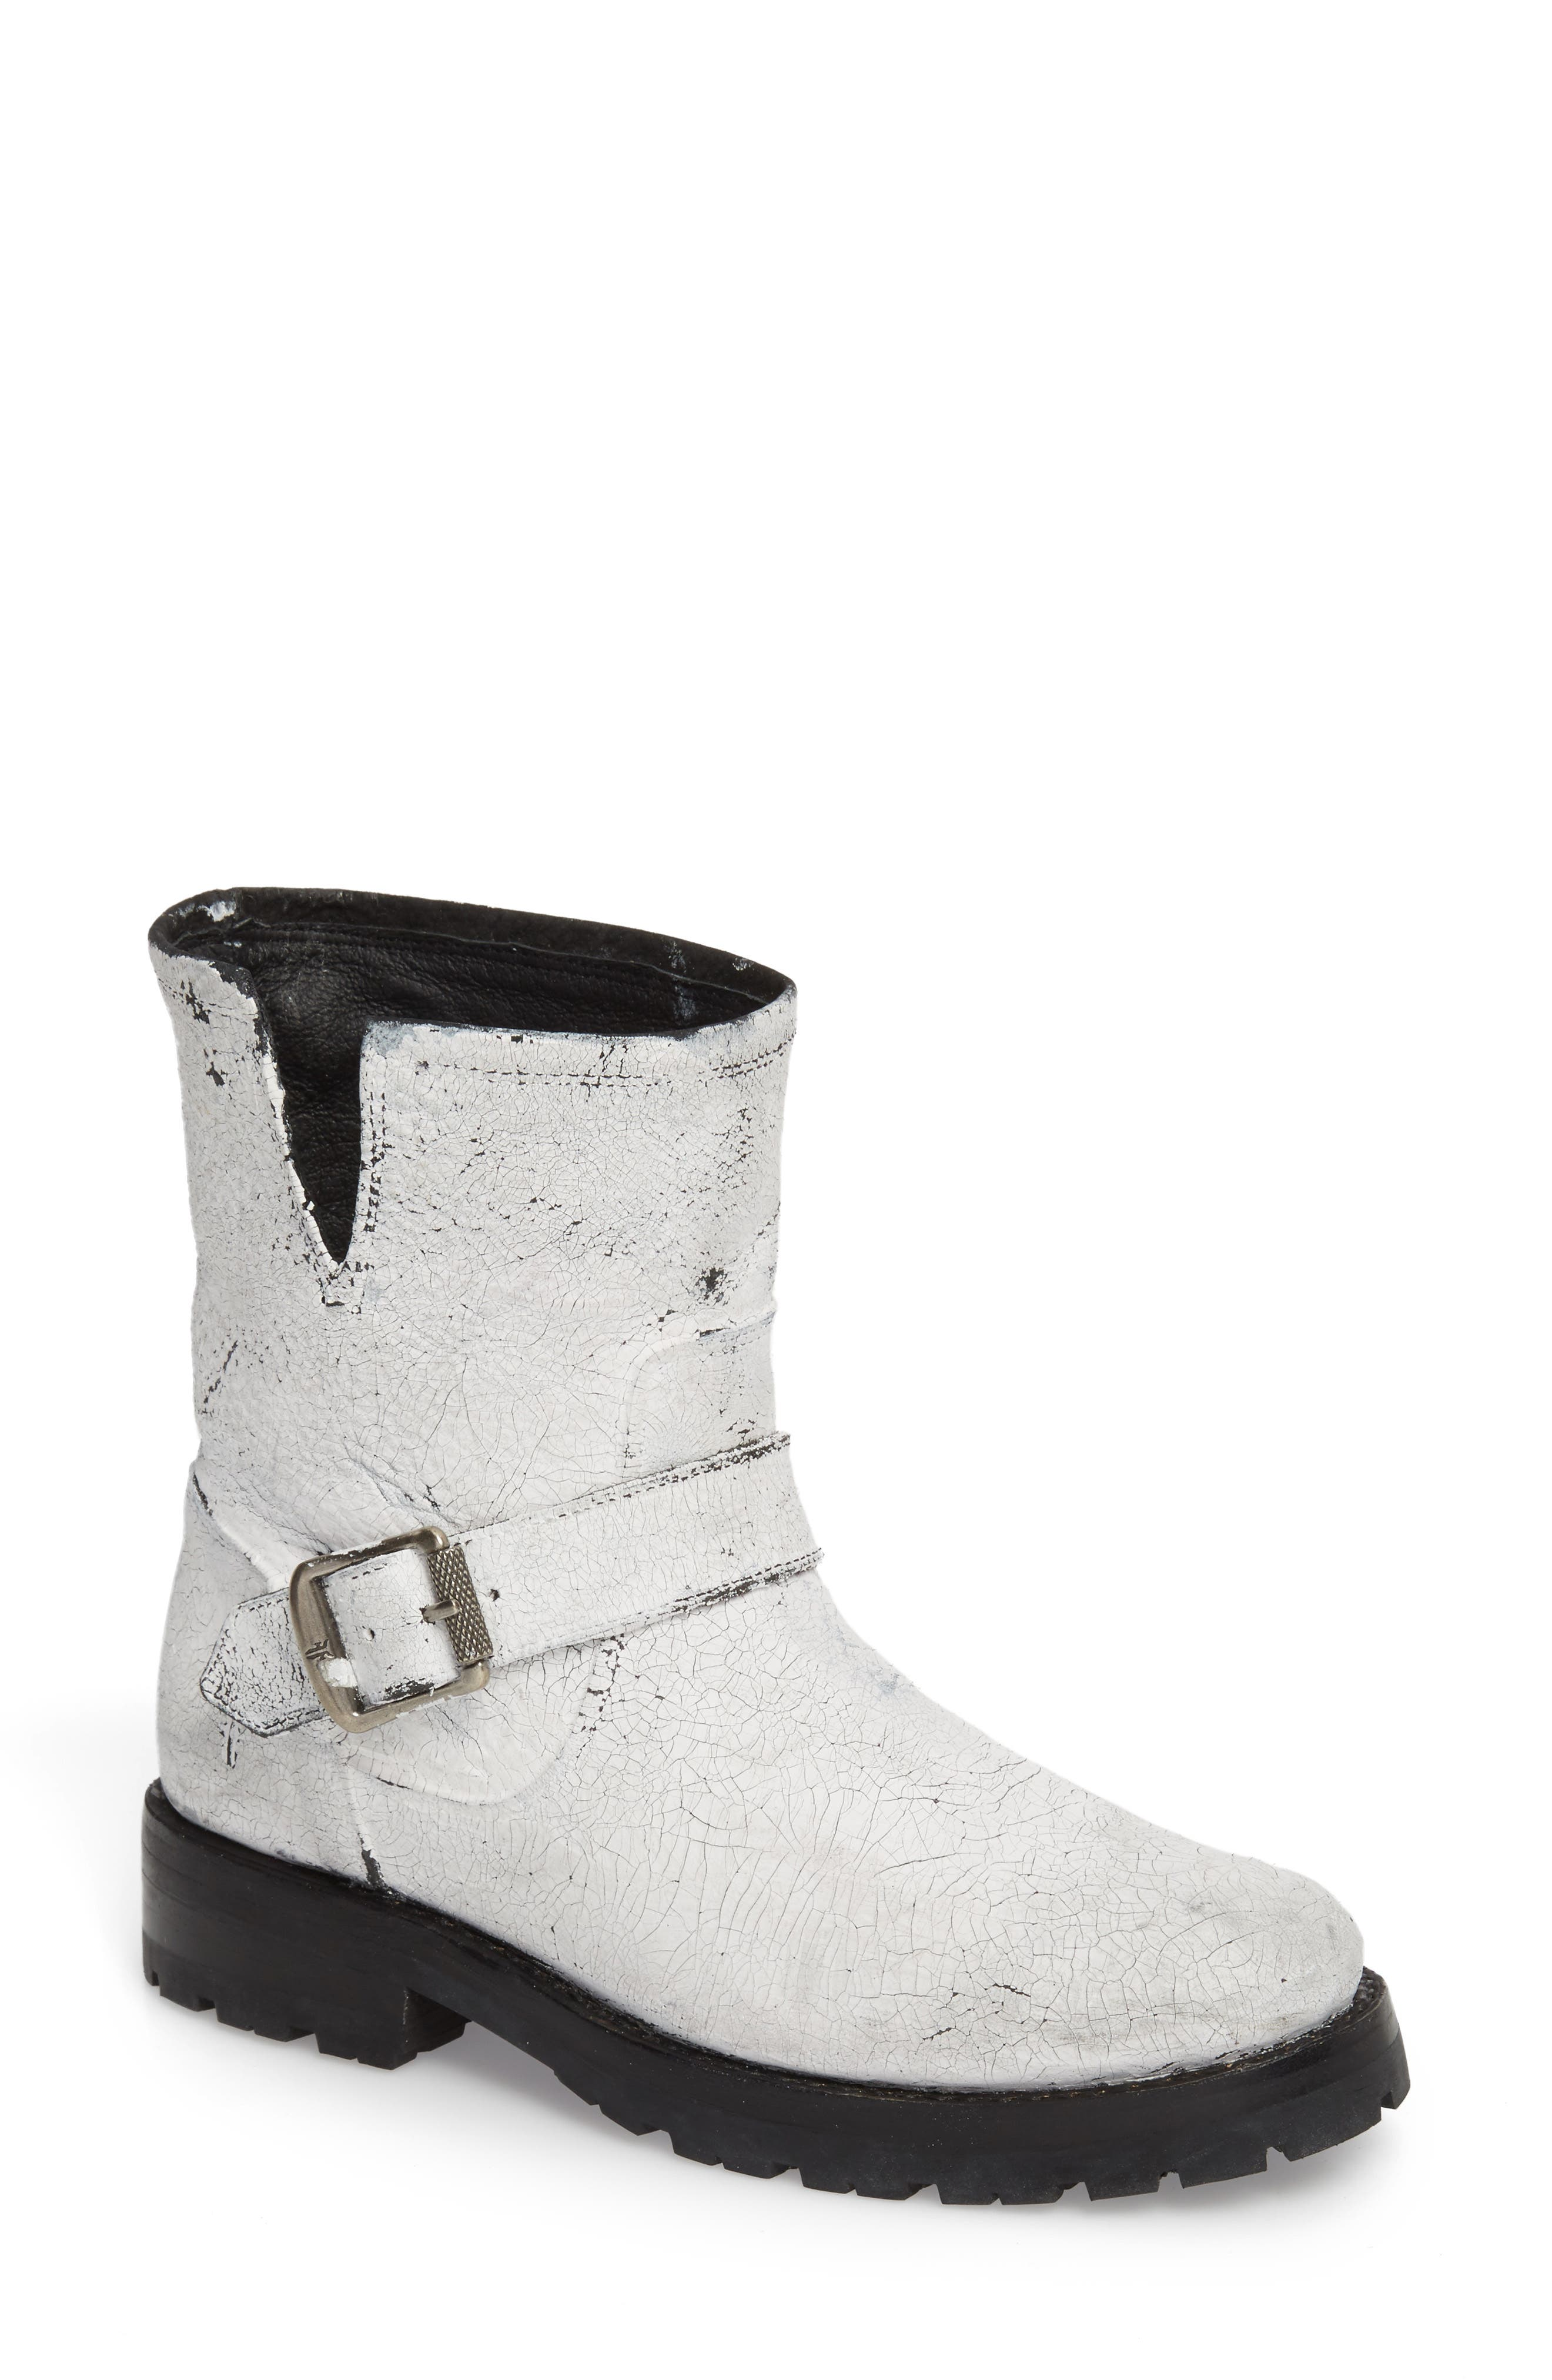 Natalie Engineer Boot,                             Main thumbnail 1, color,                             WHITE LEATHER